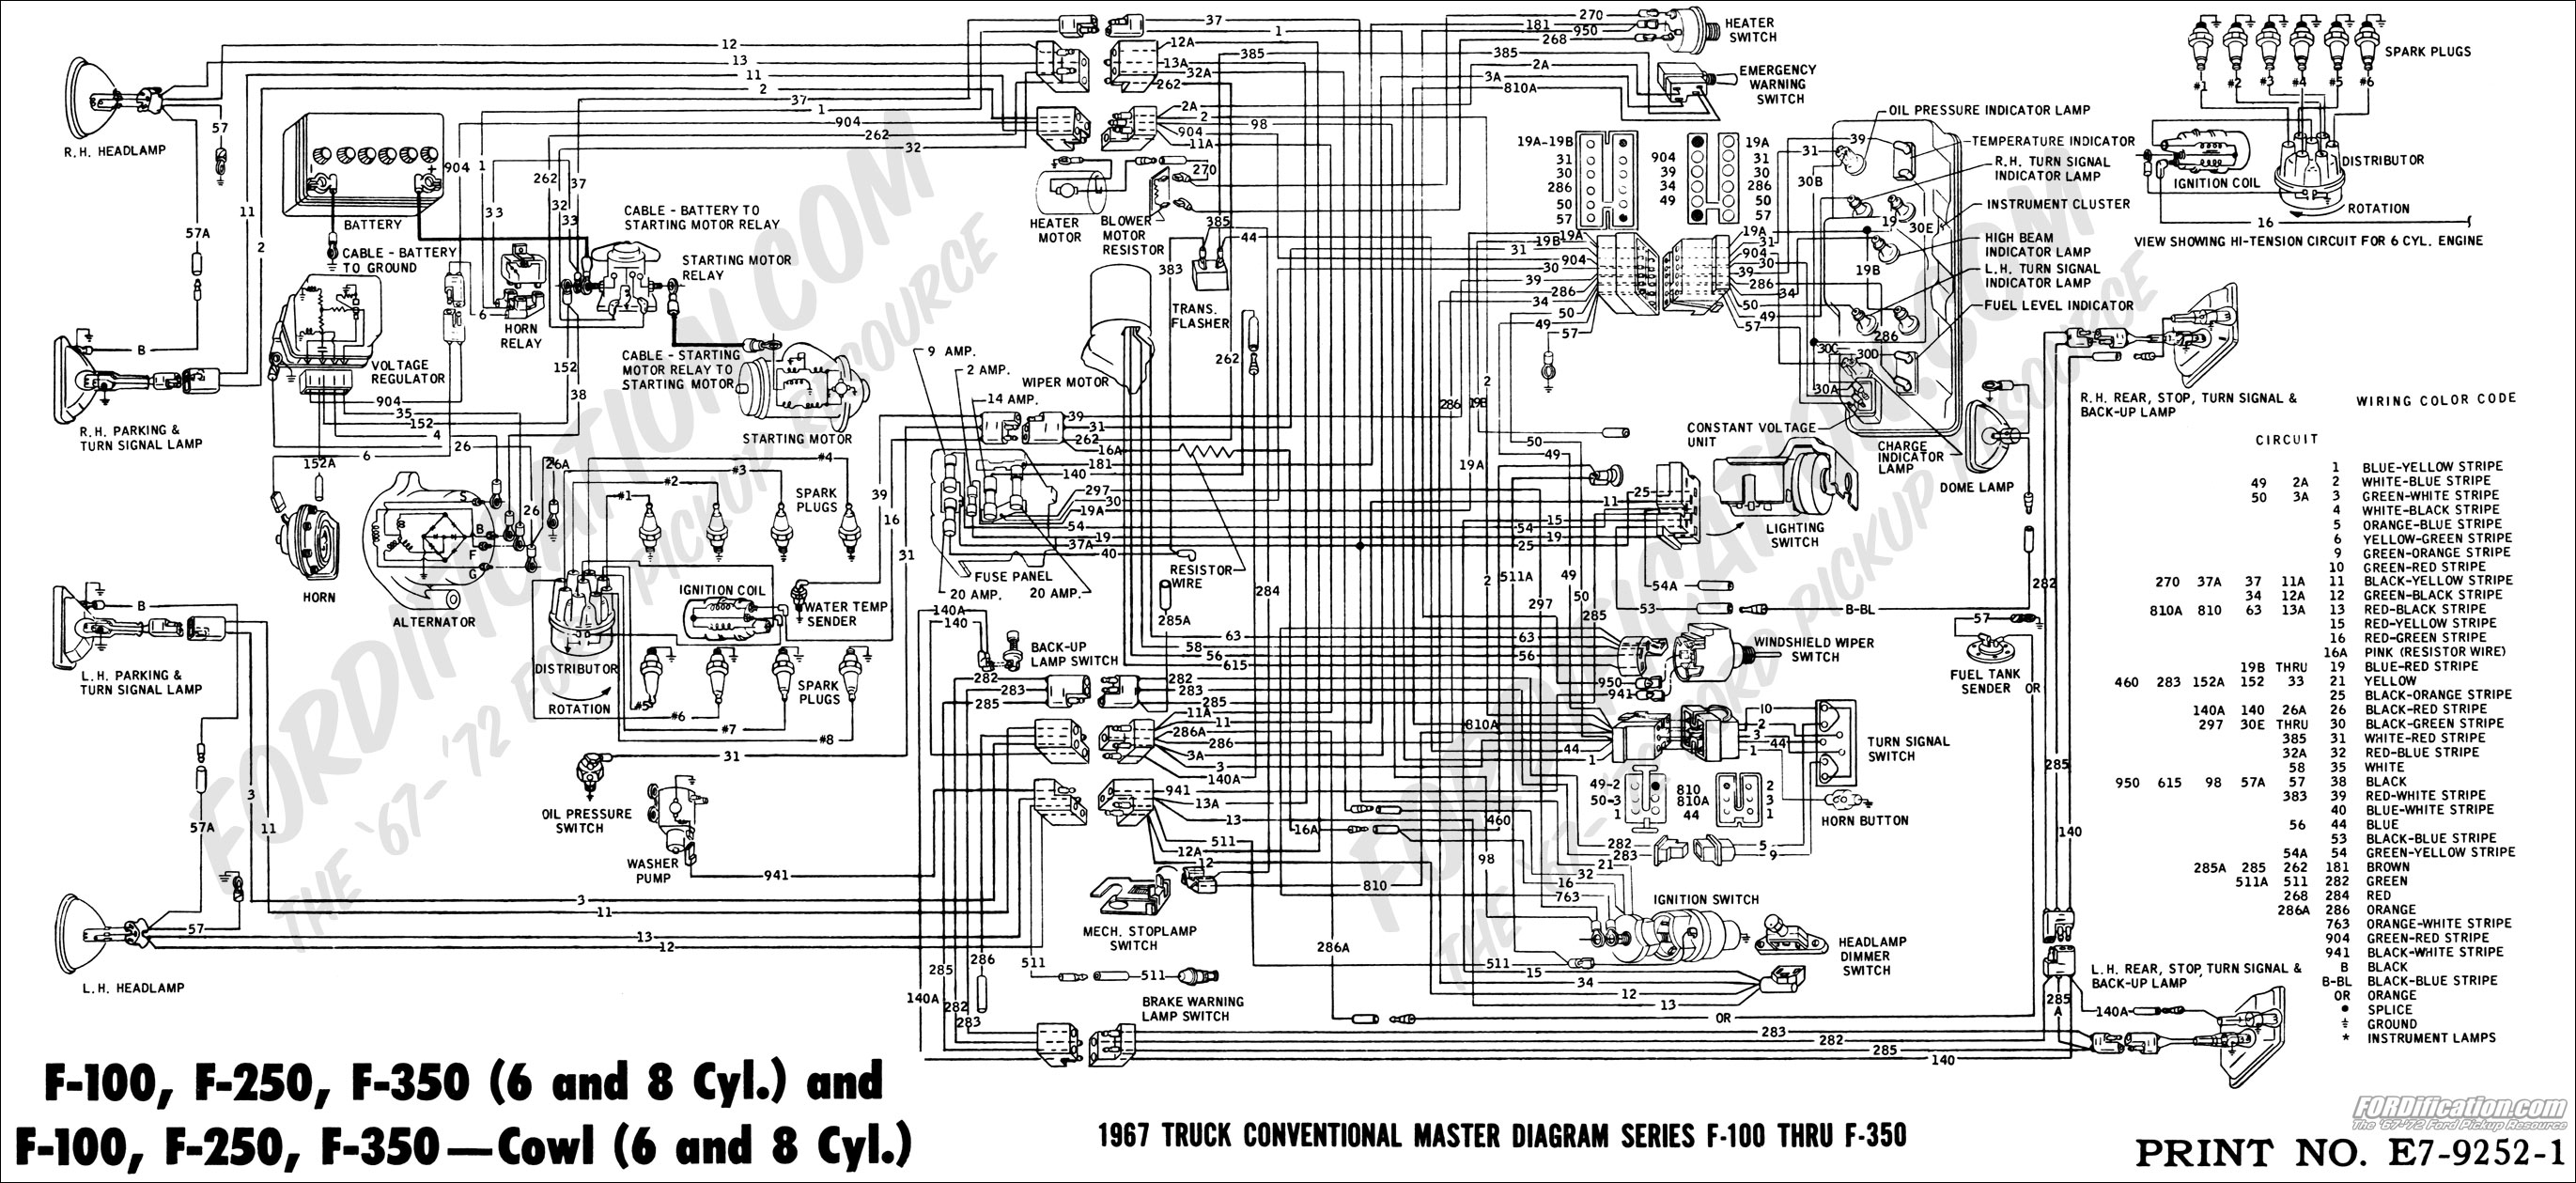 67masterdiagram 1998 ford f150 wiring diagram 1998 jeep grand cherokee wiring 1998 ford ranger electrical diagram at bayanpartner.co